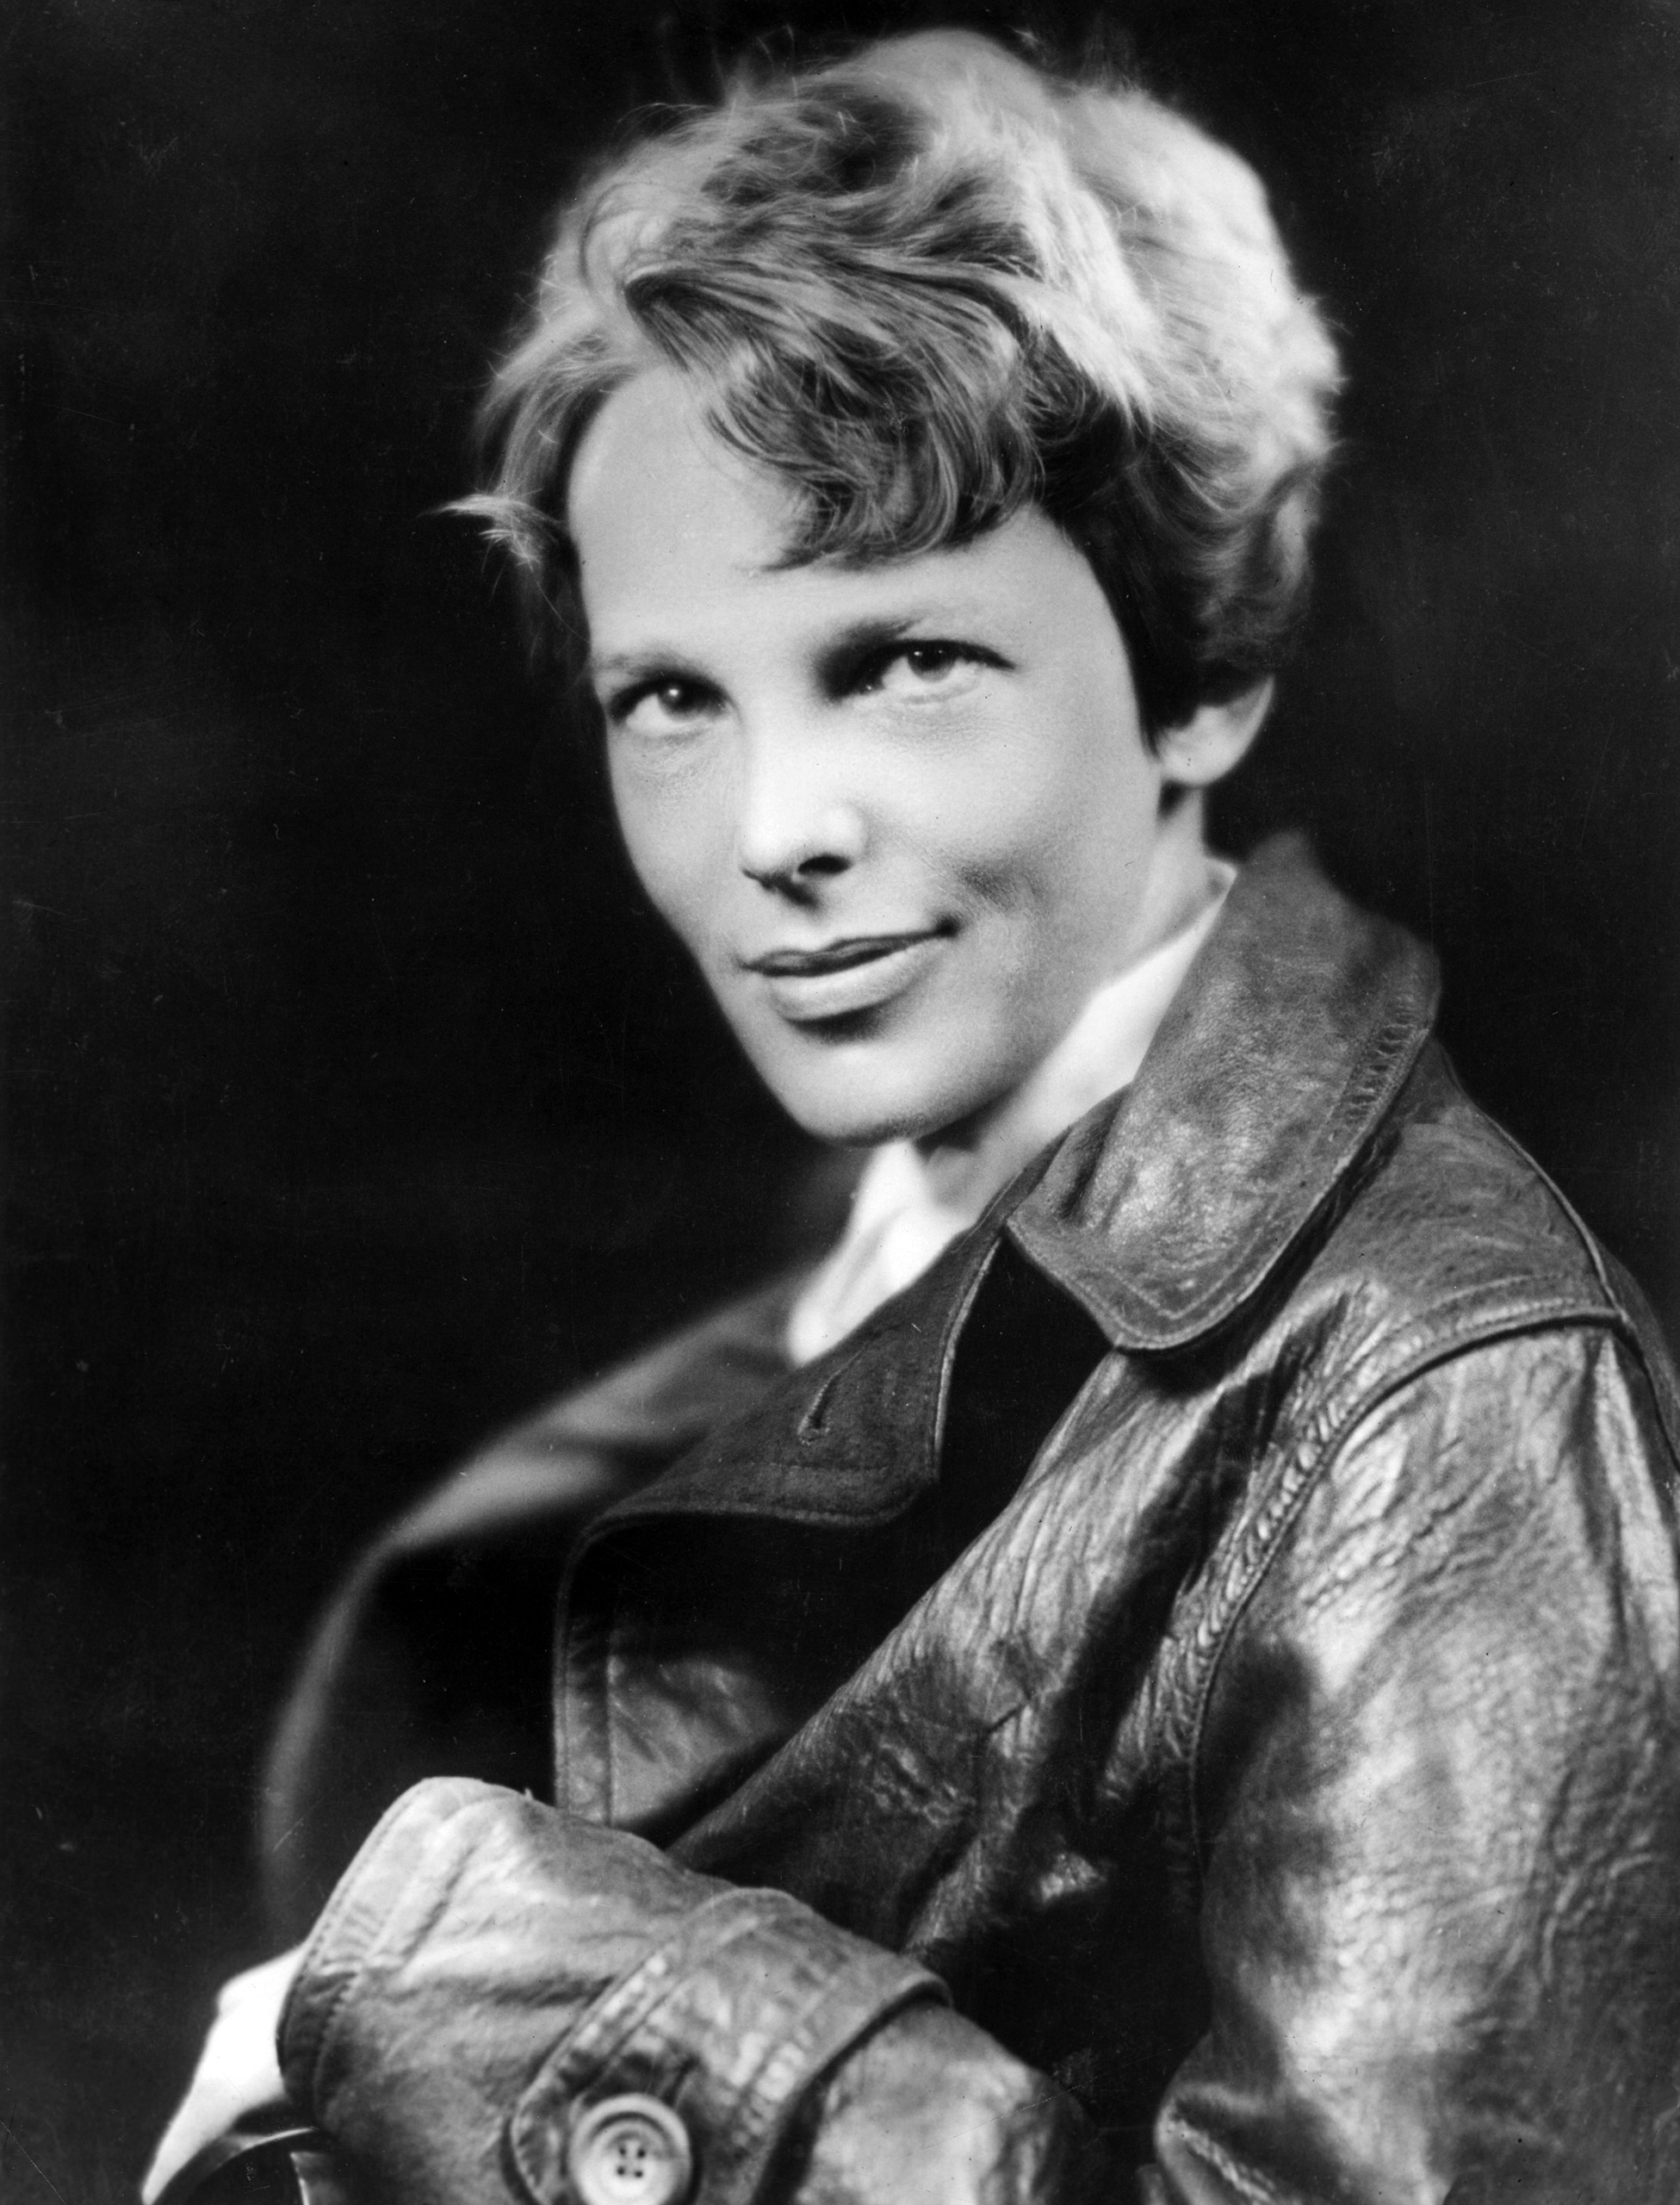 American aviator Amelia Earhart, the first woman to complete a solo  transatlantic flight, wearing